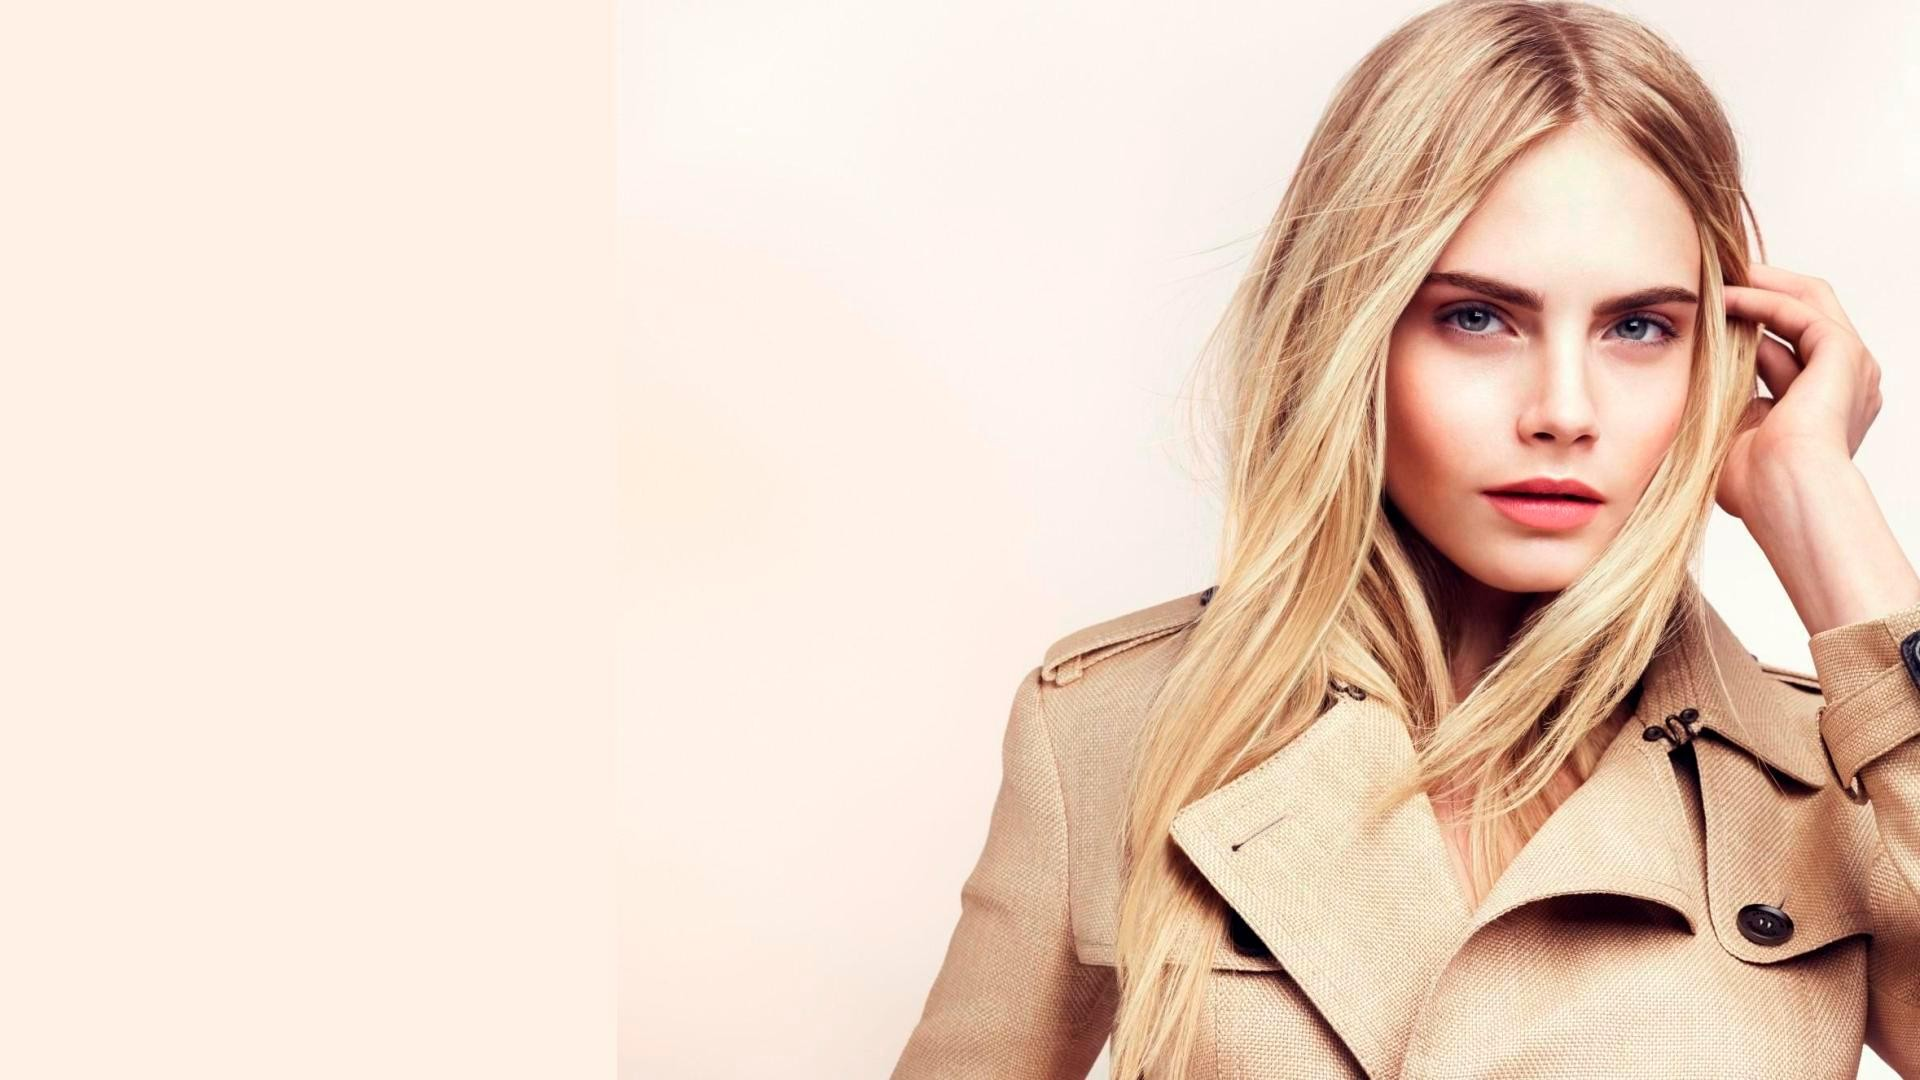 Cara Delevingne HD Pictures Full Hd Wallpapers